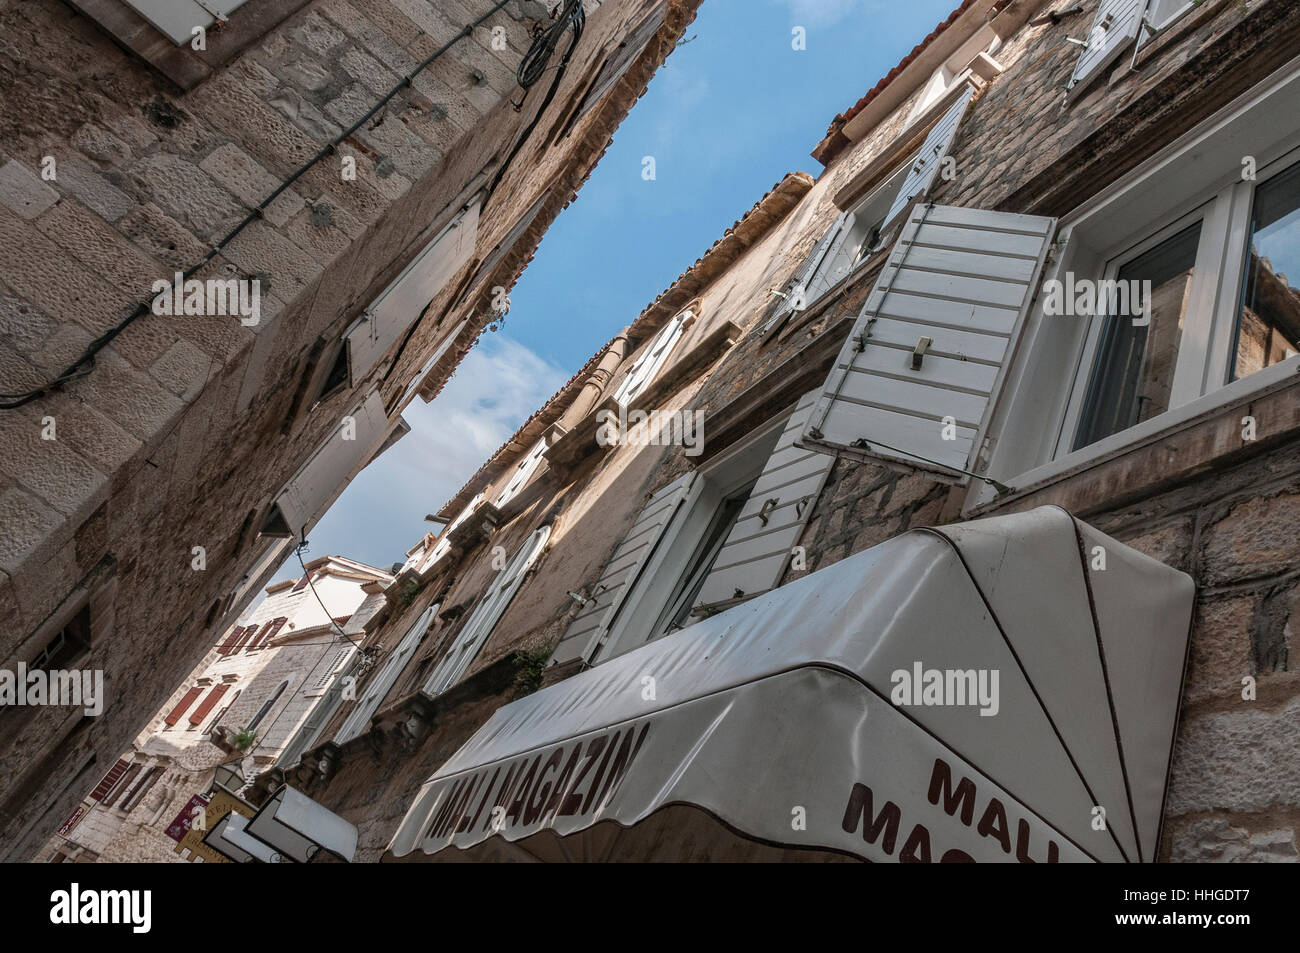 An upward look at some of the gray stone buildings with windows and shutters and an awning in the Old Town of Trogir. - Stock Image